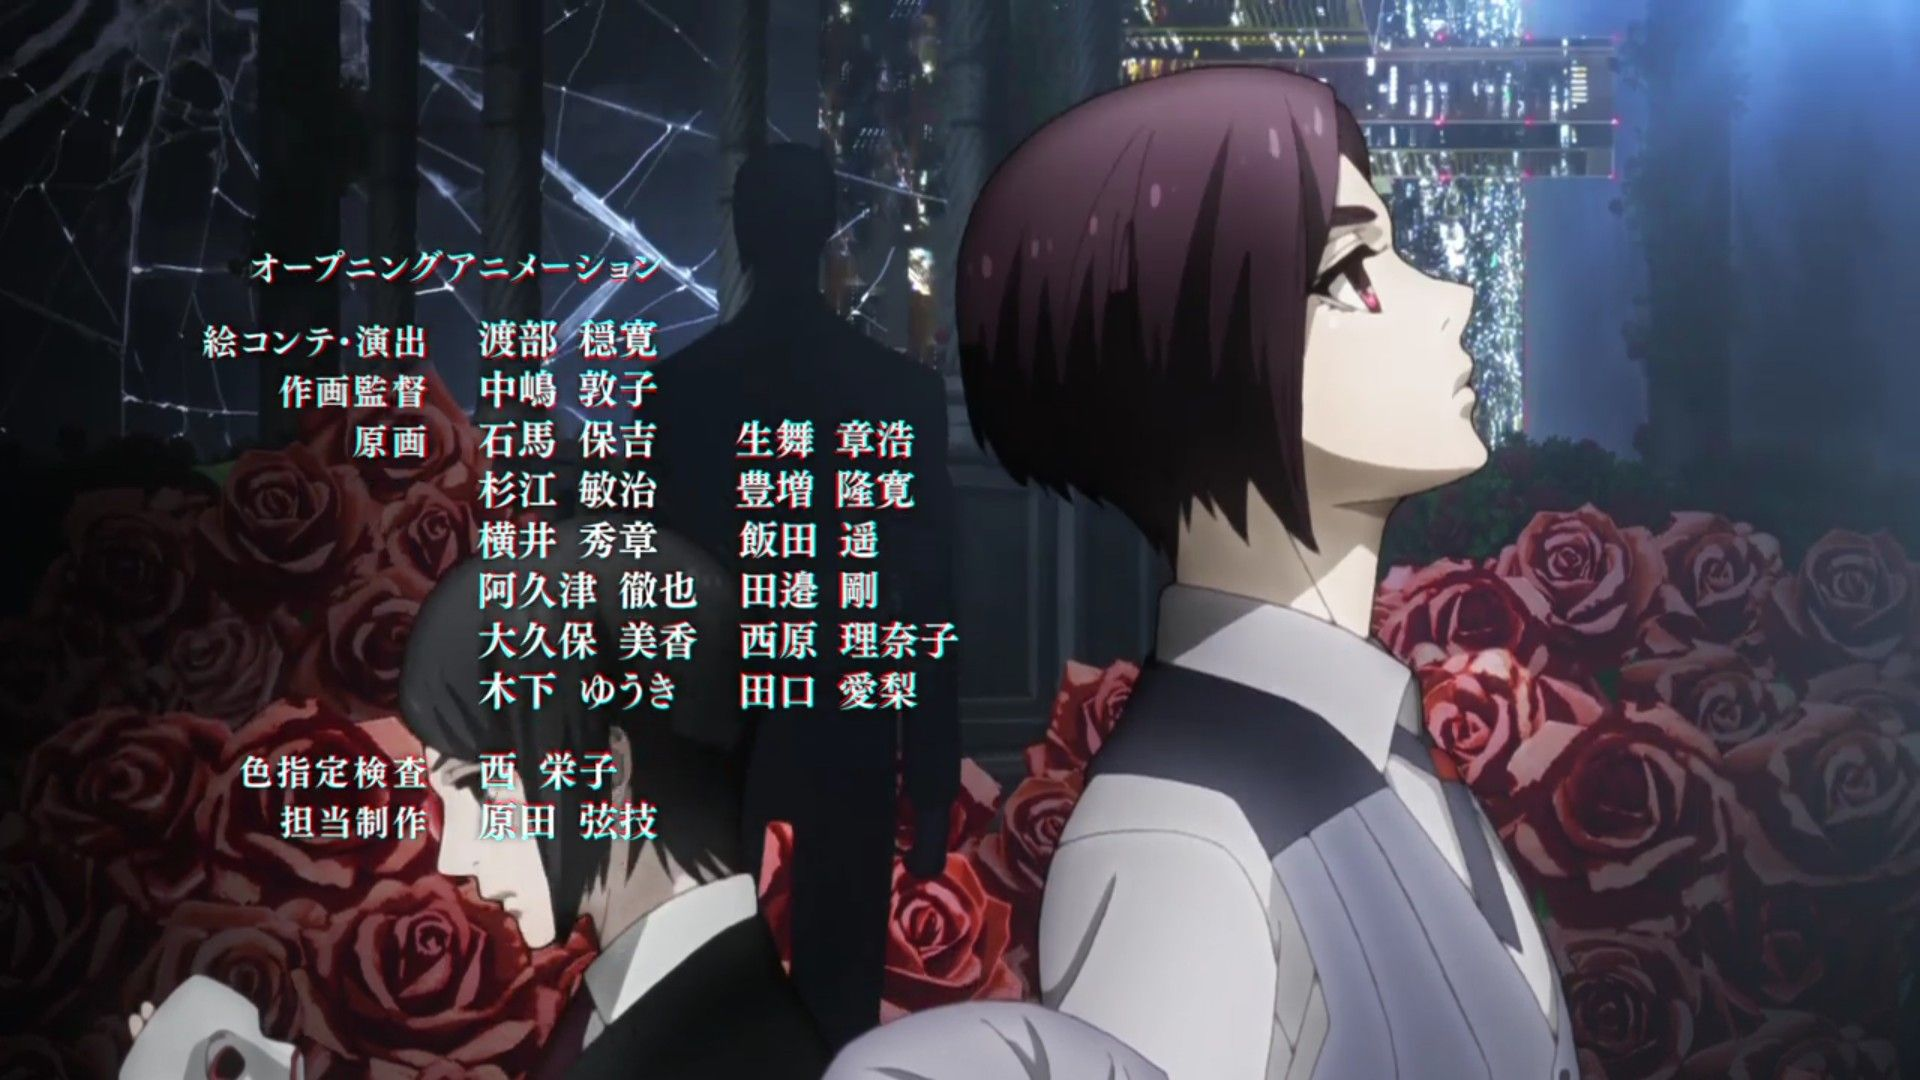 Pin by Jacobareias on Tokyo ghoul Tokyo ghoul, Anime, Ghoul